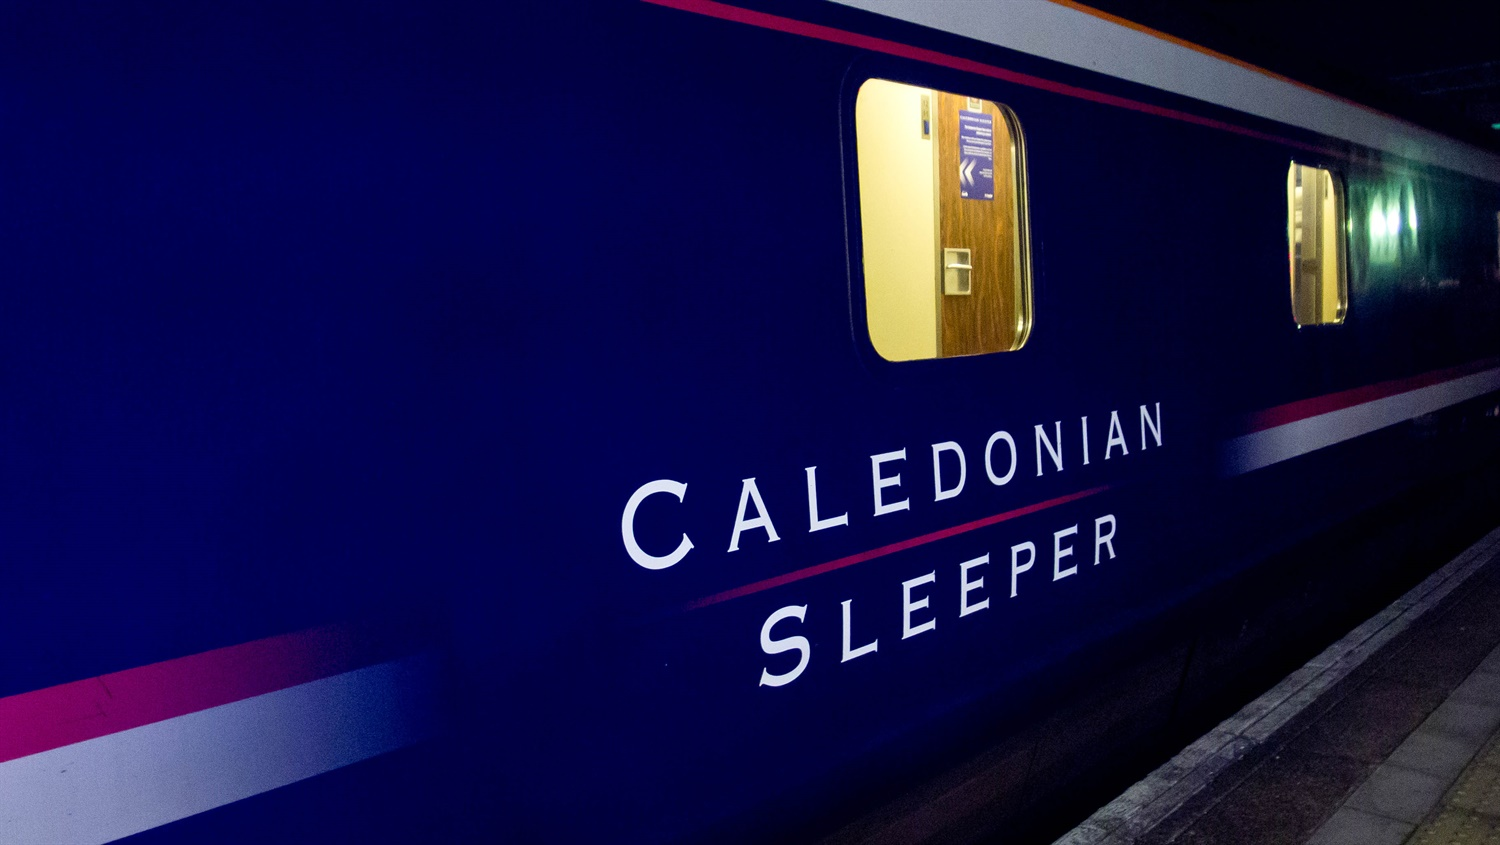 GB Railfreight wins contract to haul Caledonian Sleepers